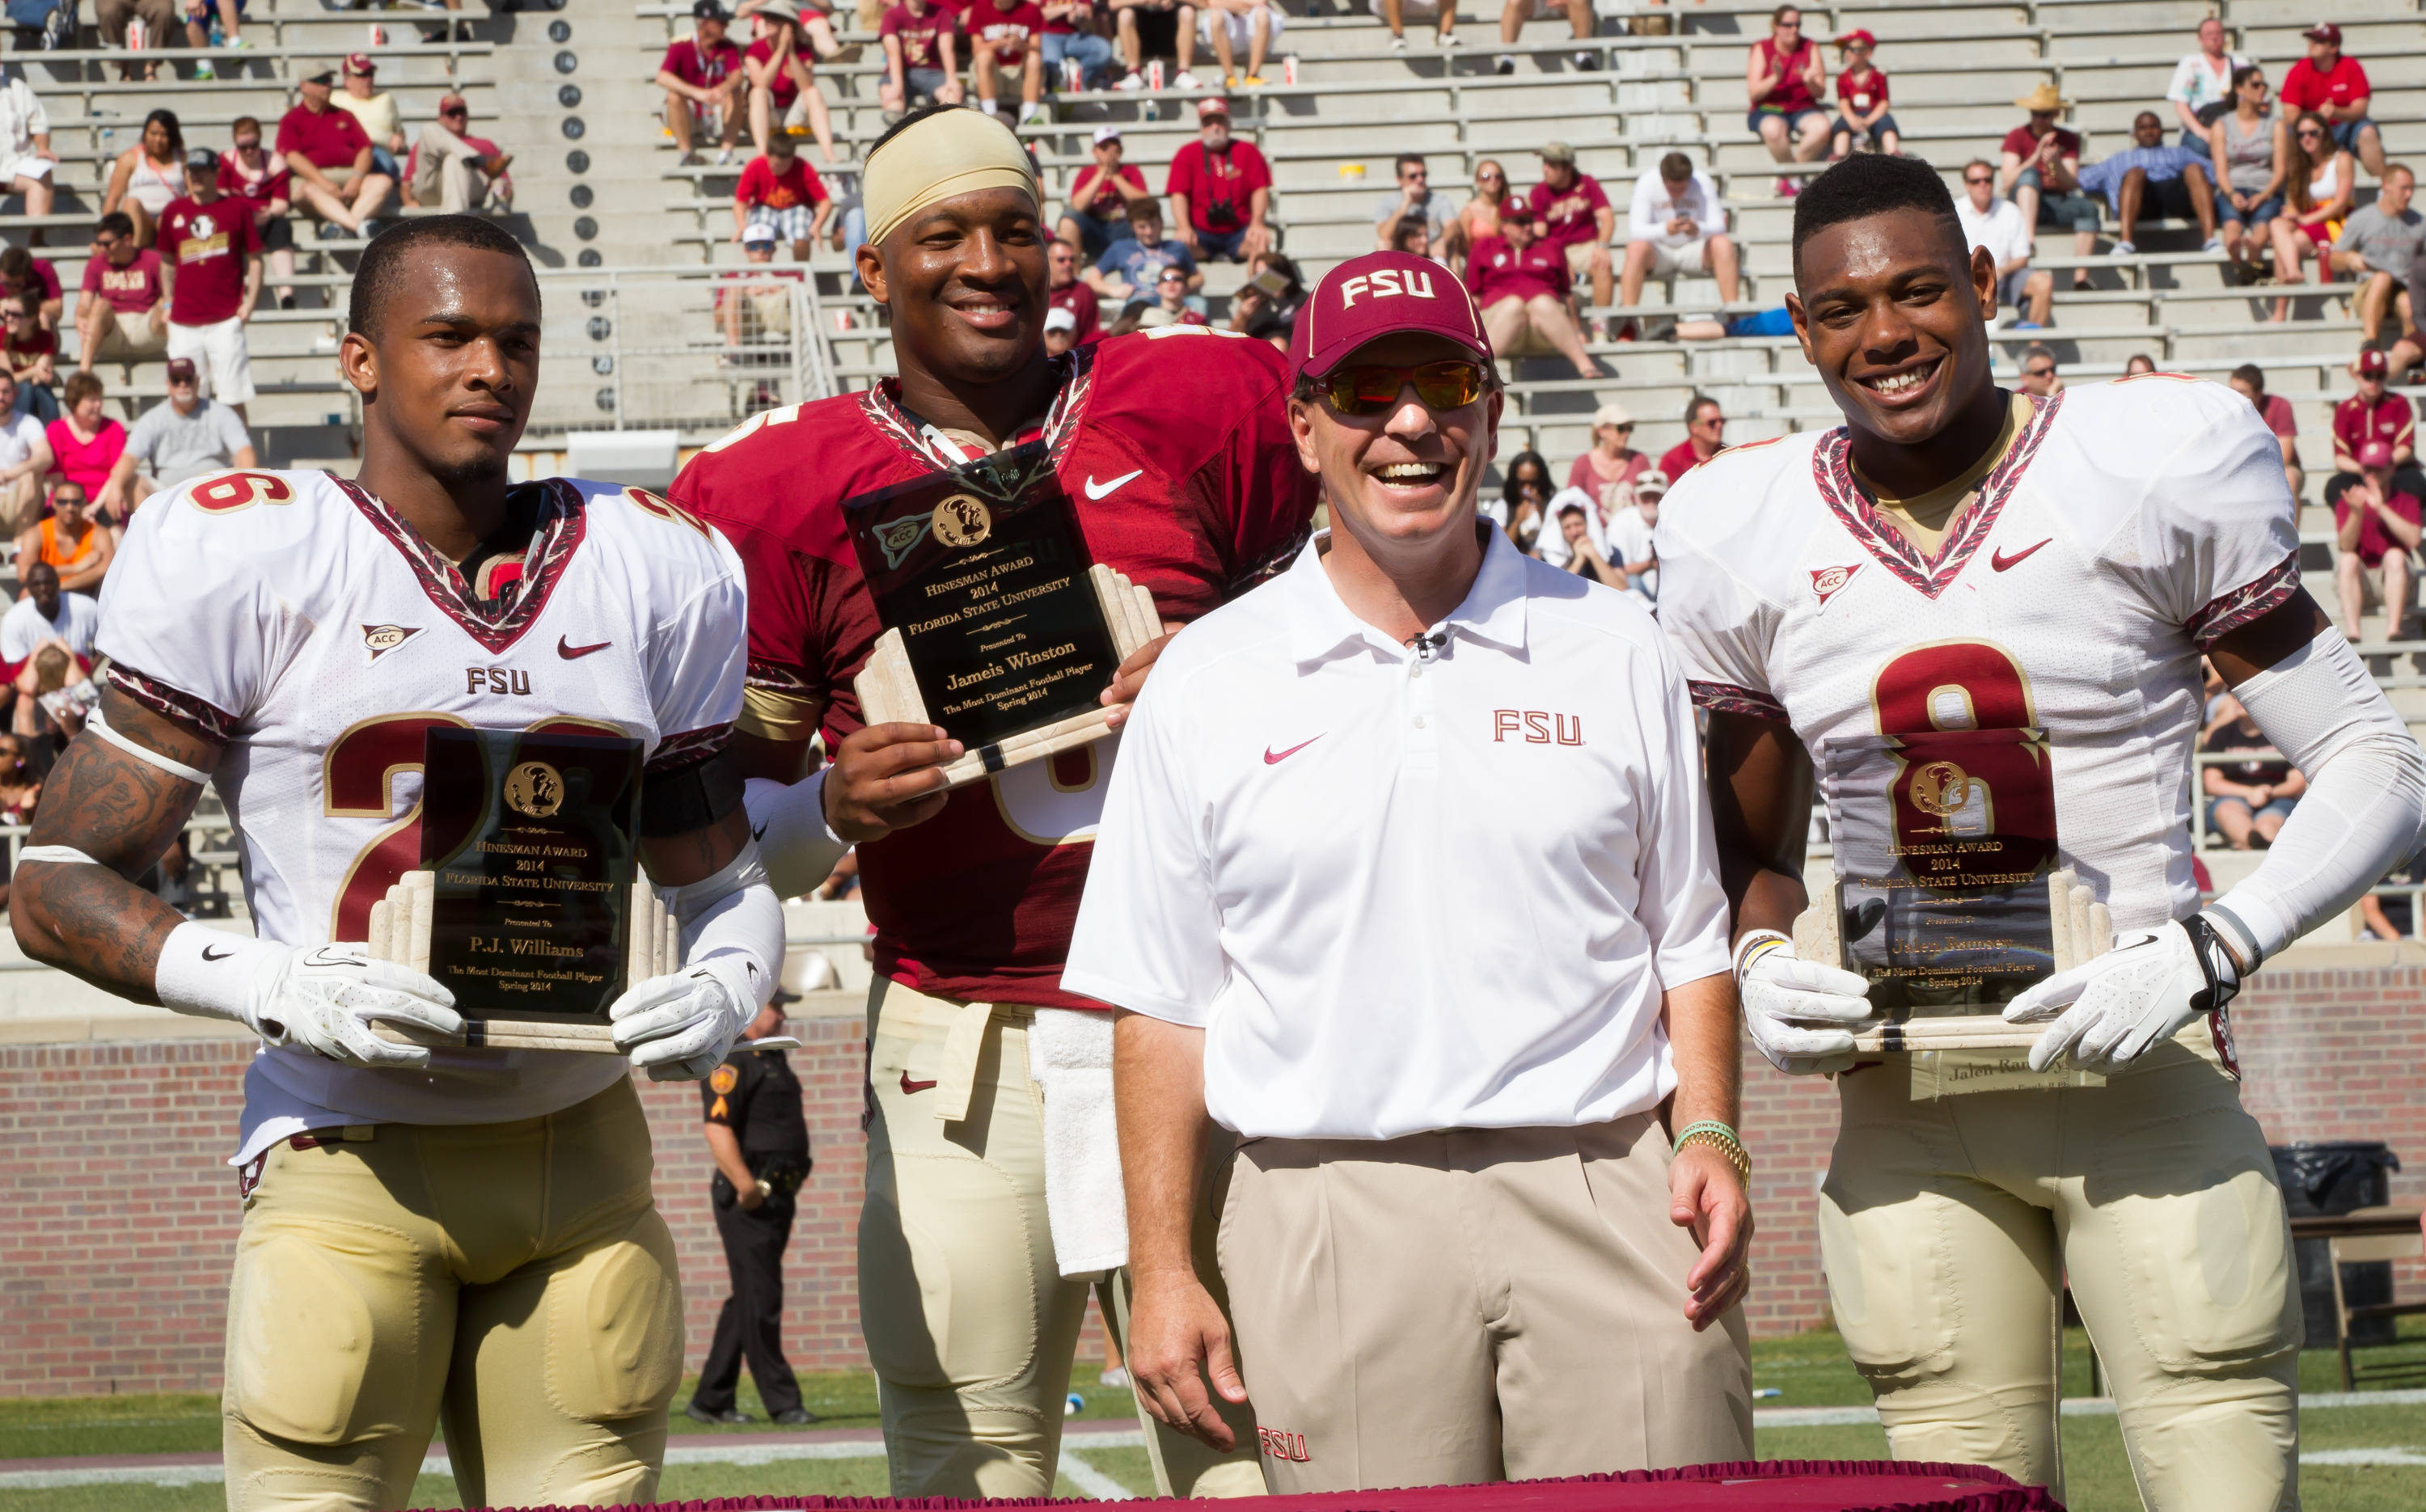 P.J. Williams (26), Jameis Winston (5), Jalen Ramsey (8) are presented the Hinesman Award from Jimbo Fisher.